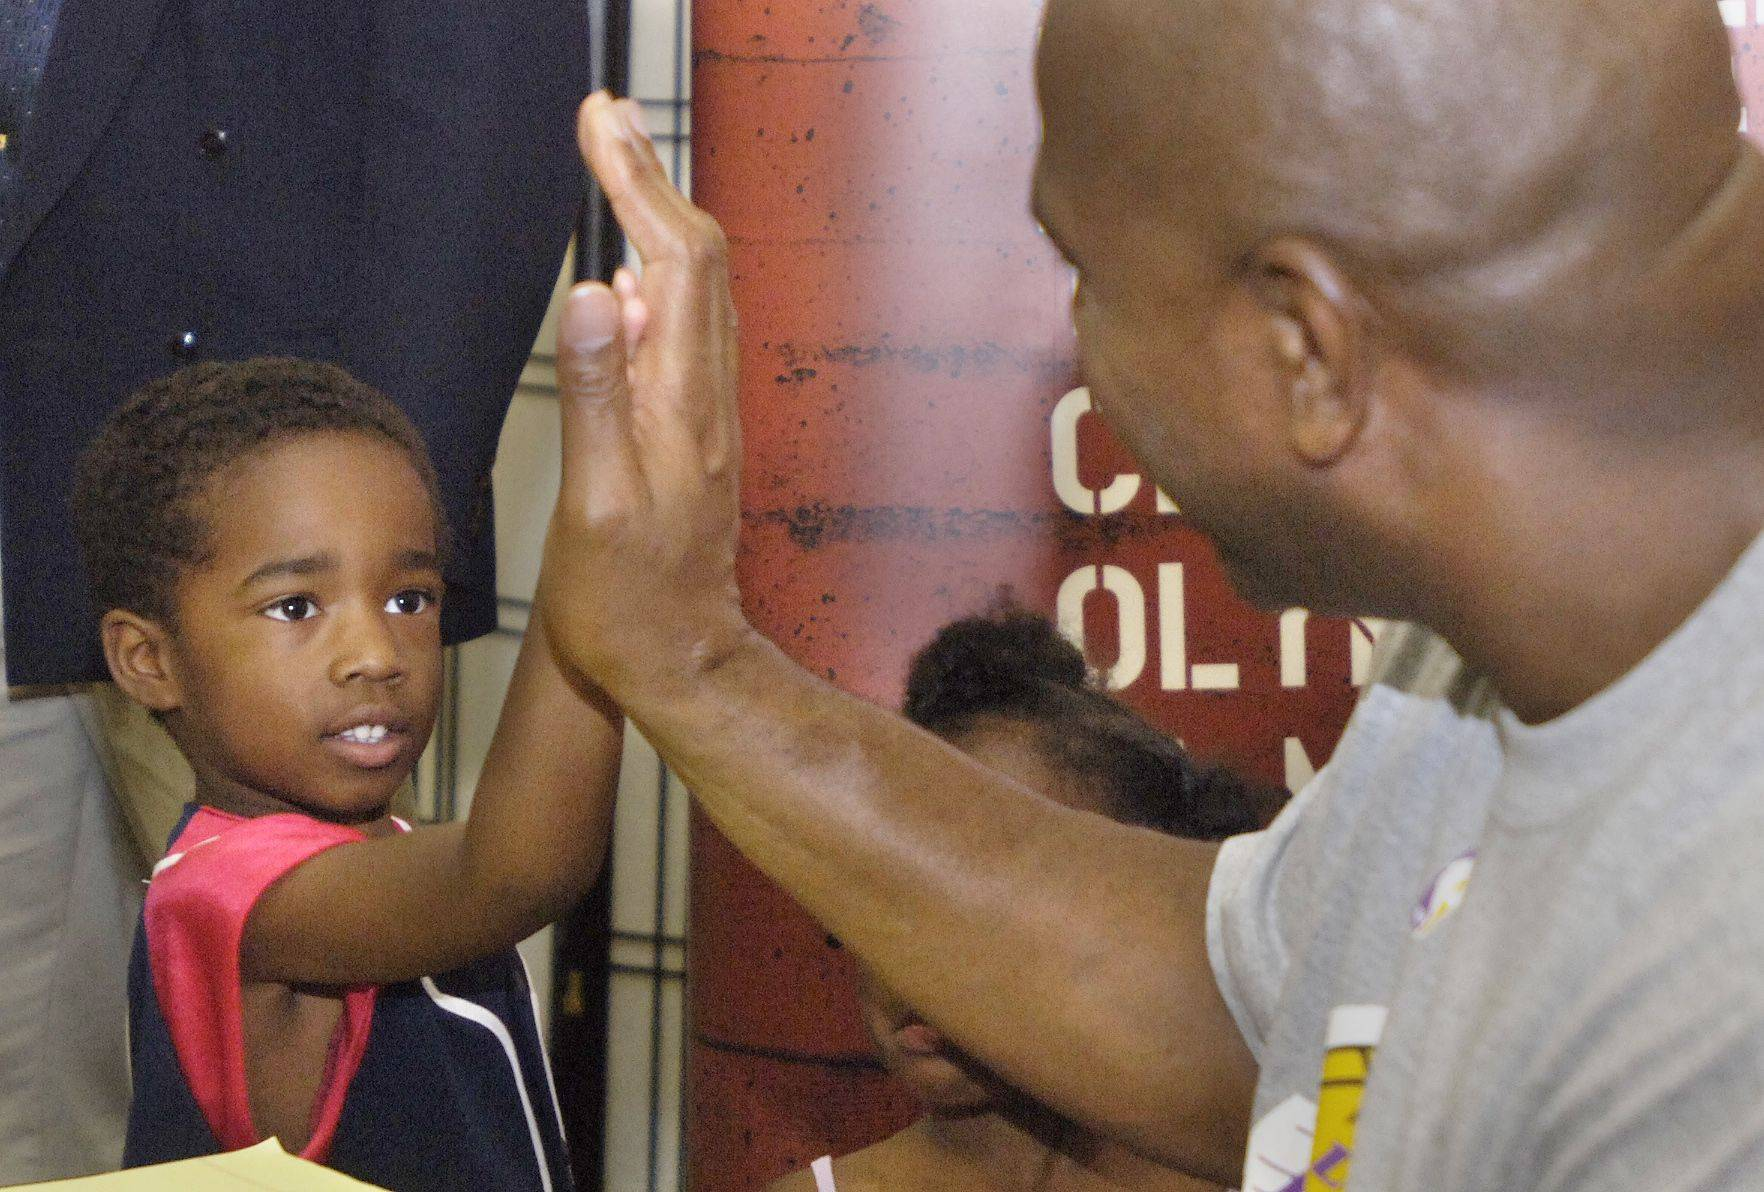 During a 2005 visit to hawk his basketball shoes at the Meijer Superstore in Elgin, NBA legend Magic Johnson makes an impression on 4-year-old Patrick Stephen. Shortly after being diagnosed with HIV, the likable superstar brought his fame and his message to The Oprah Show.